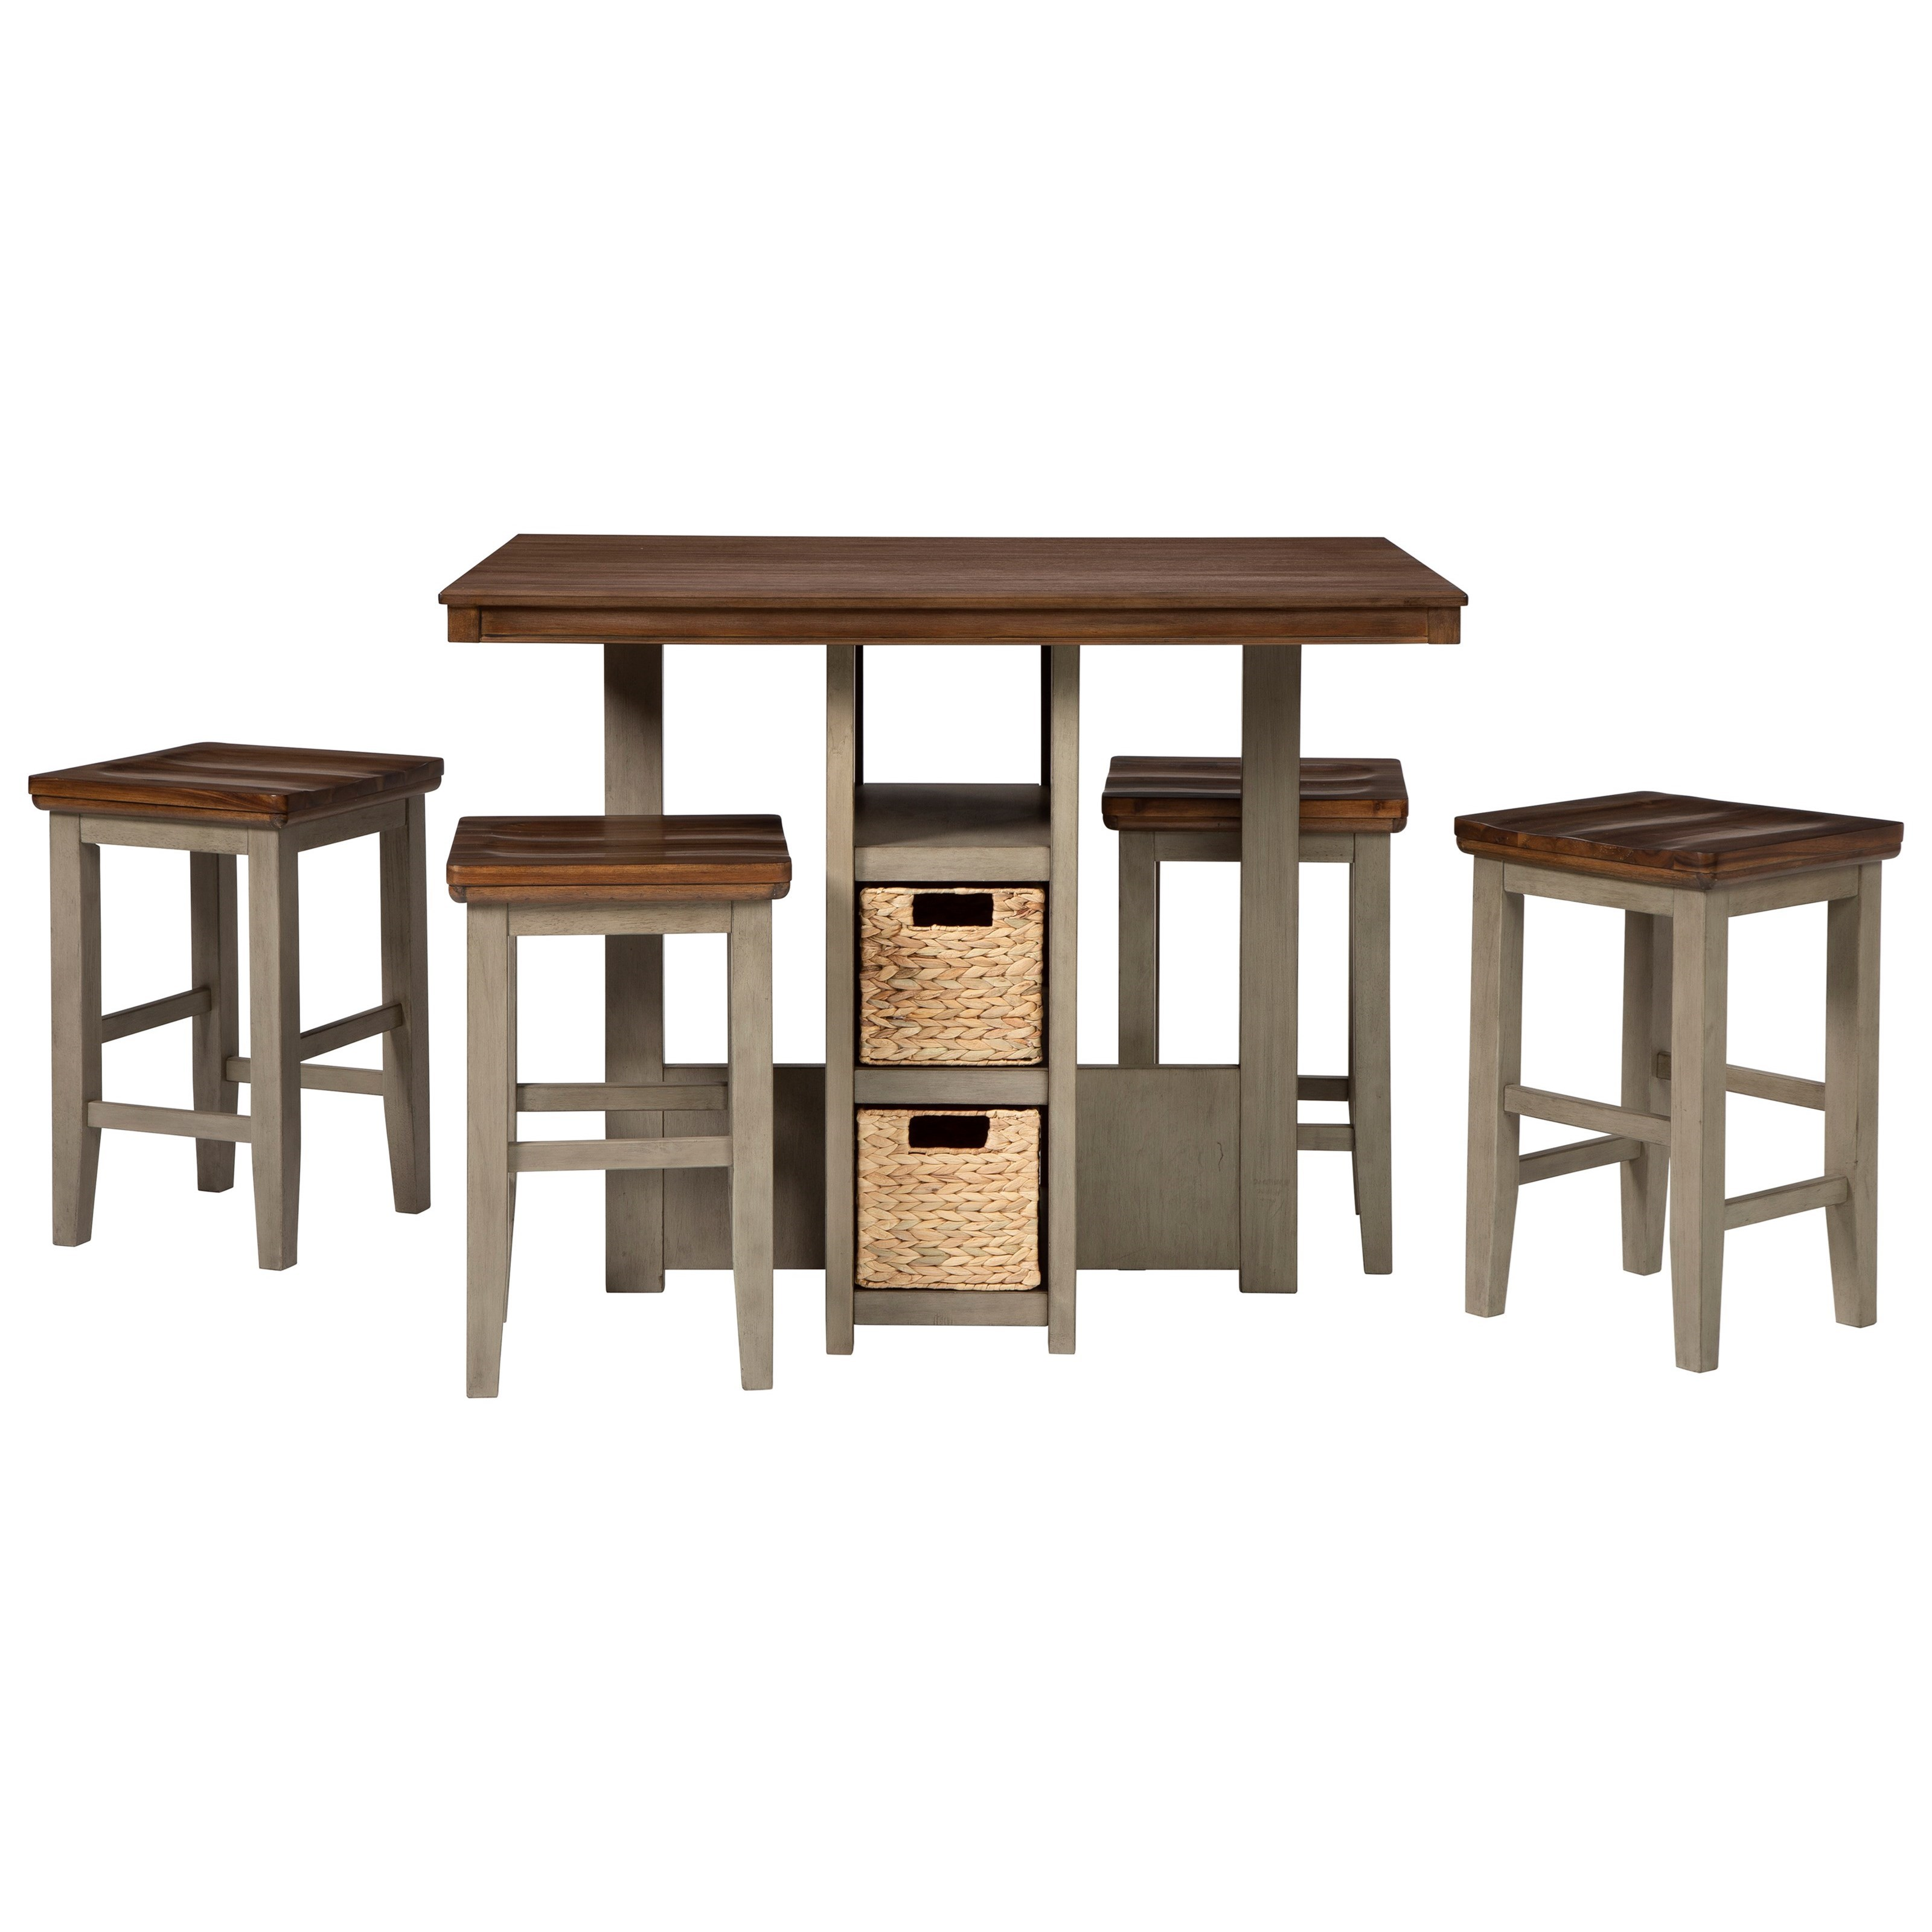 Lettner 5-Piece Counter Table Set by Signature Design by Ashley at HomeWorld Furniture